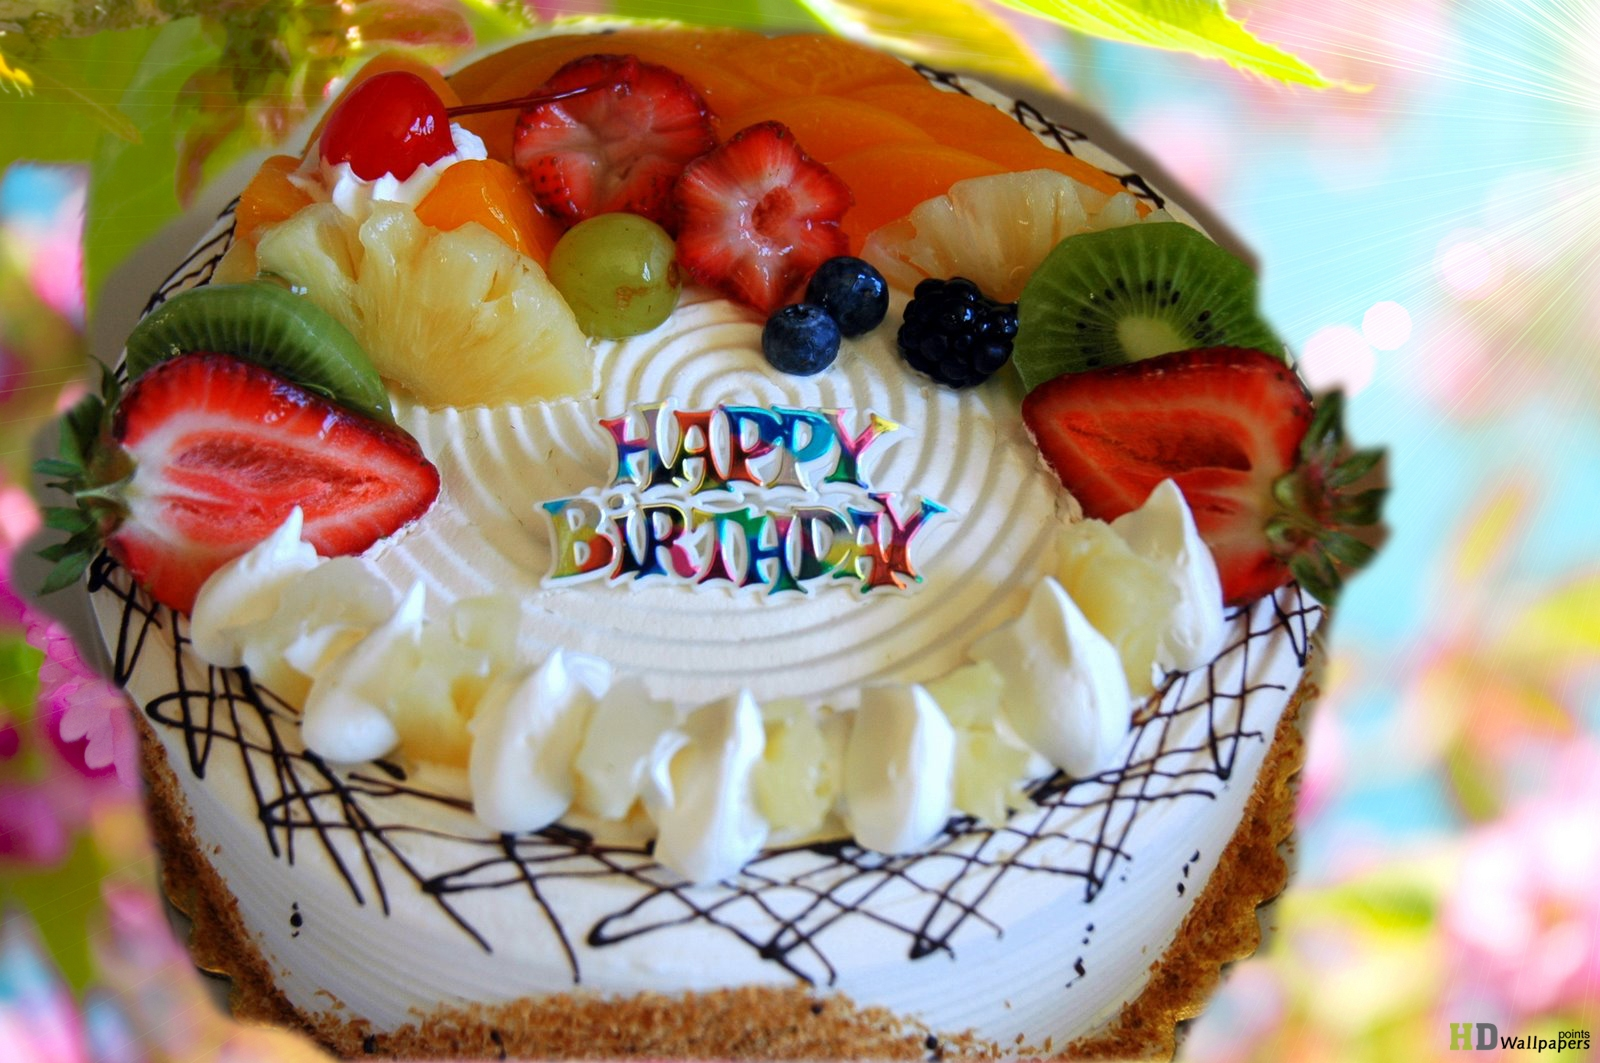 birthday cake photo image download ; birthday-cake-images-free-download-birthday-cake-pictures-free-download-clipartsgram-with-white-cream-cake-design-with-fruits-ideas